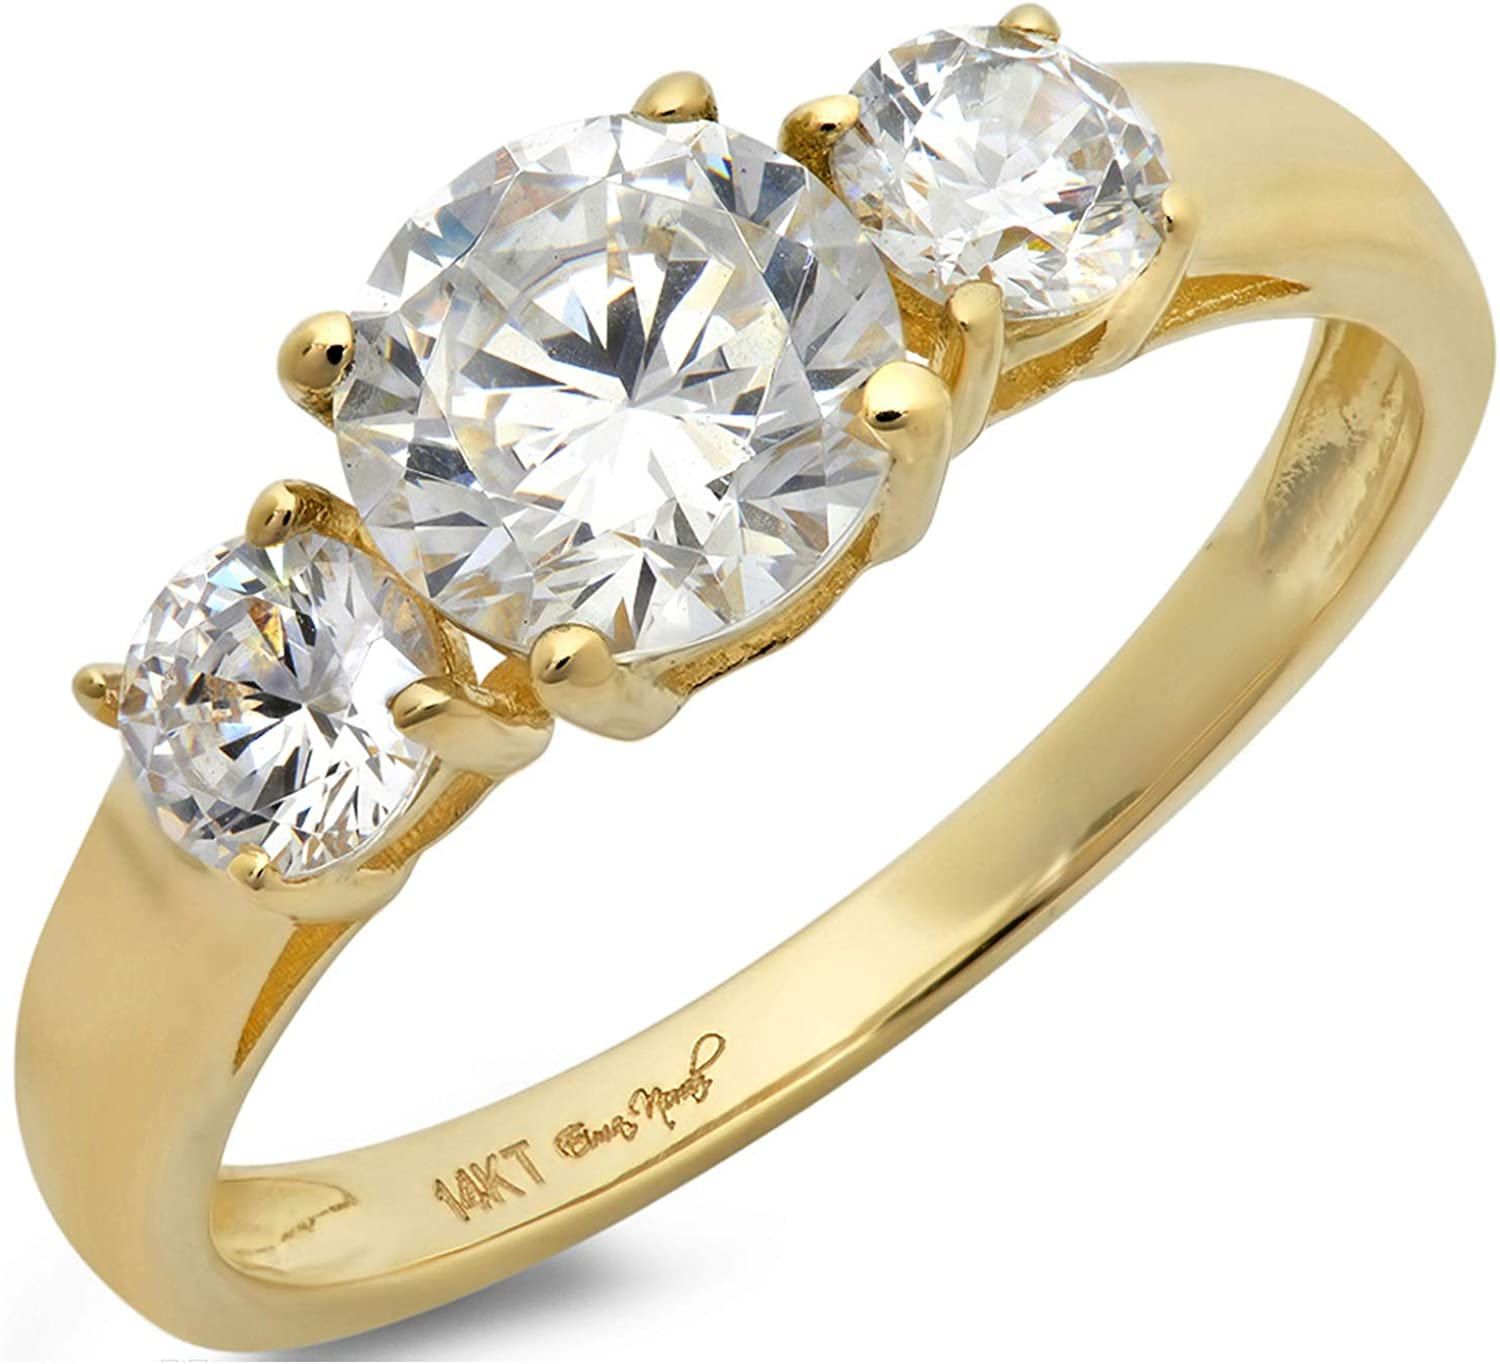 1.47ct Brilliant Round Cut Solitaire three stone Stunning Genuine White lab created Sapphire Ideal VVS1 & Simulated Diamond Designer Modern Statement Ring Real Solid 14k Yellow Gold Clara Pucci